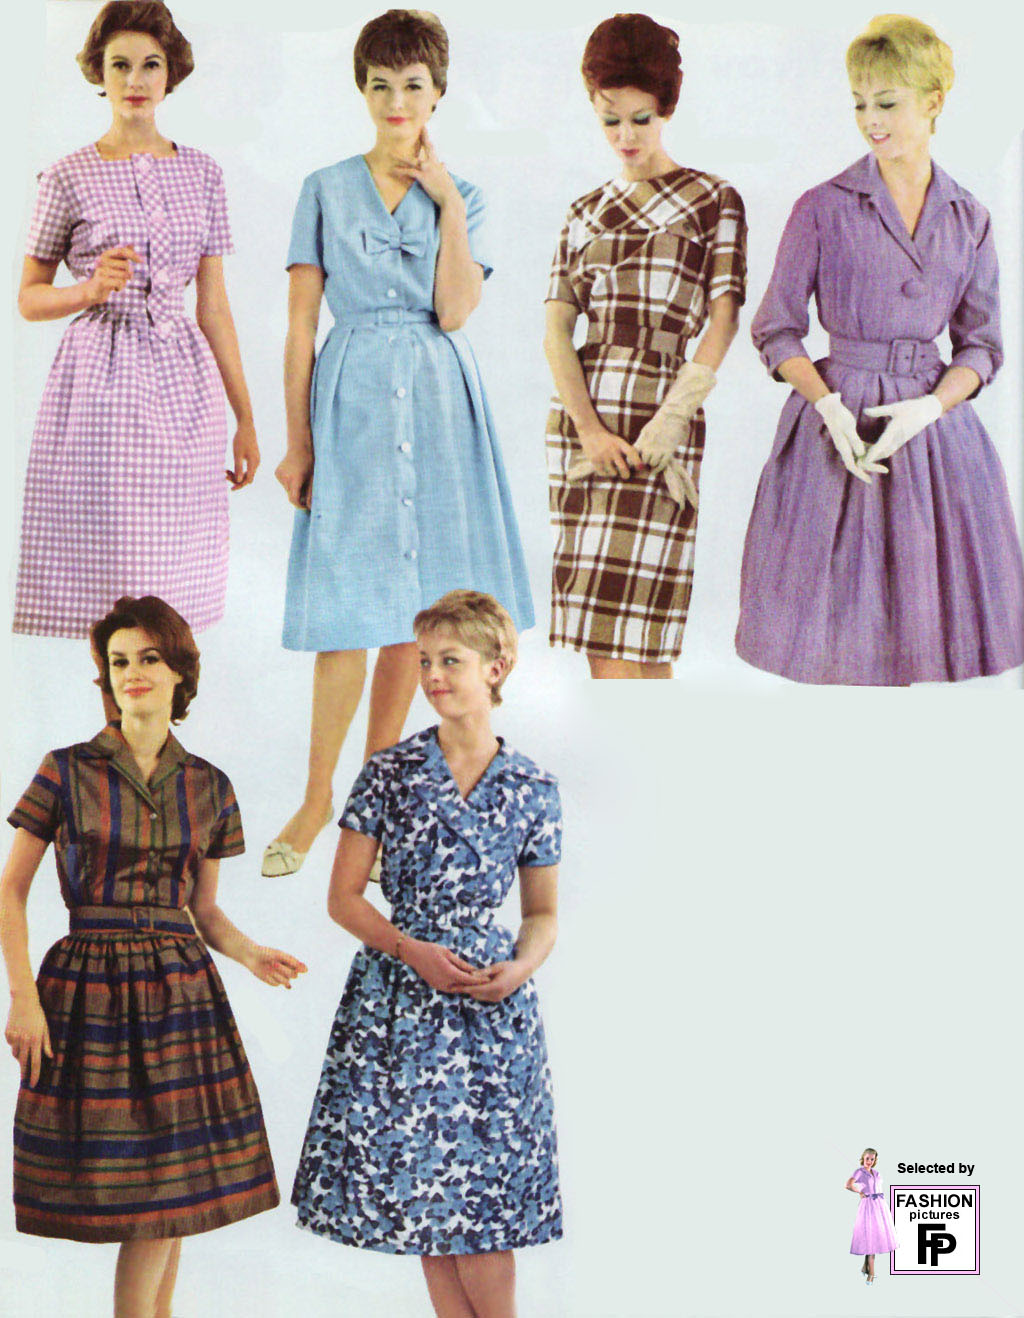 70s clothing styles in SHOPCOM Clothes